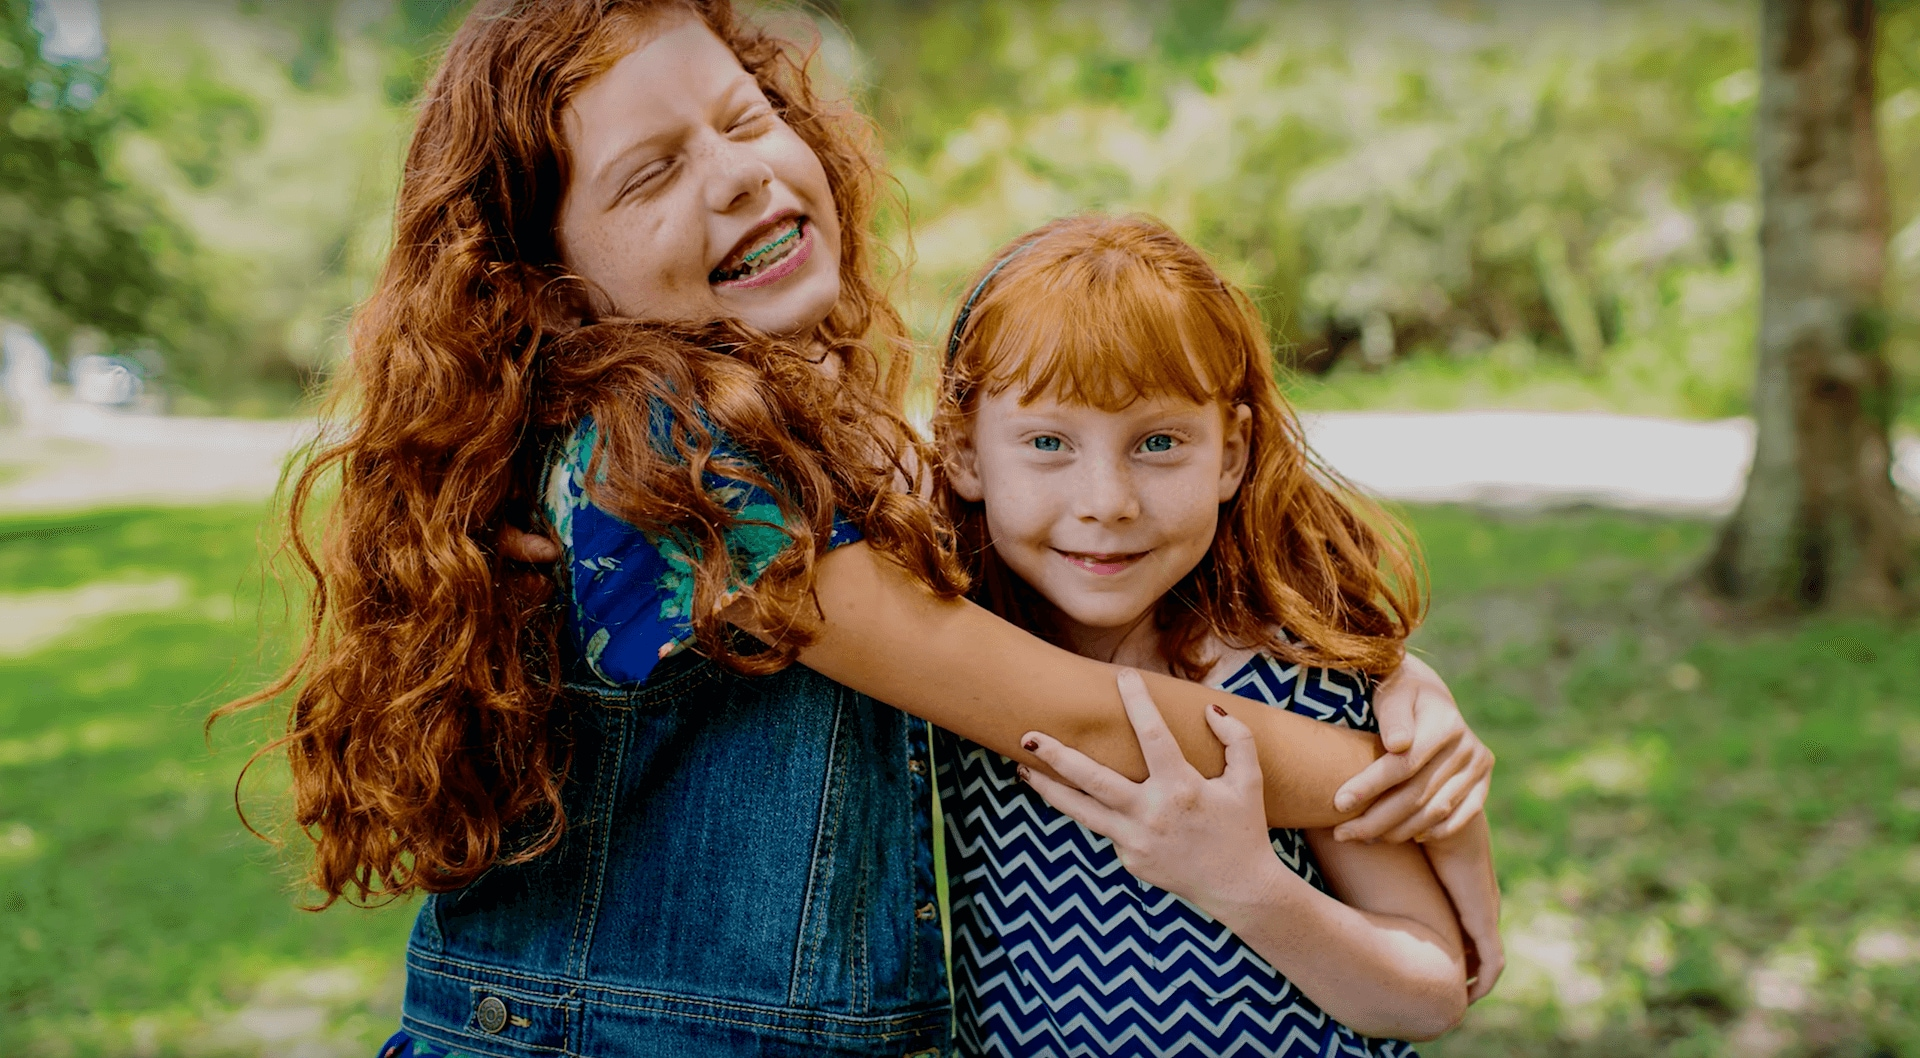 two smiling children hugging each other